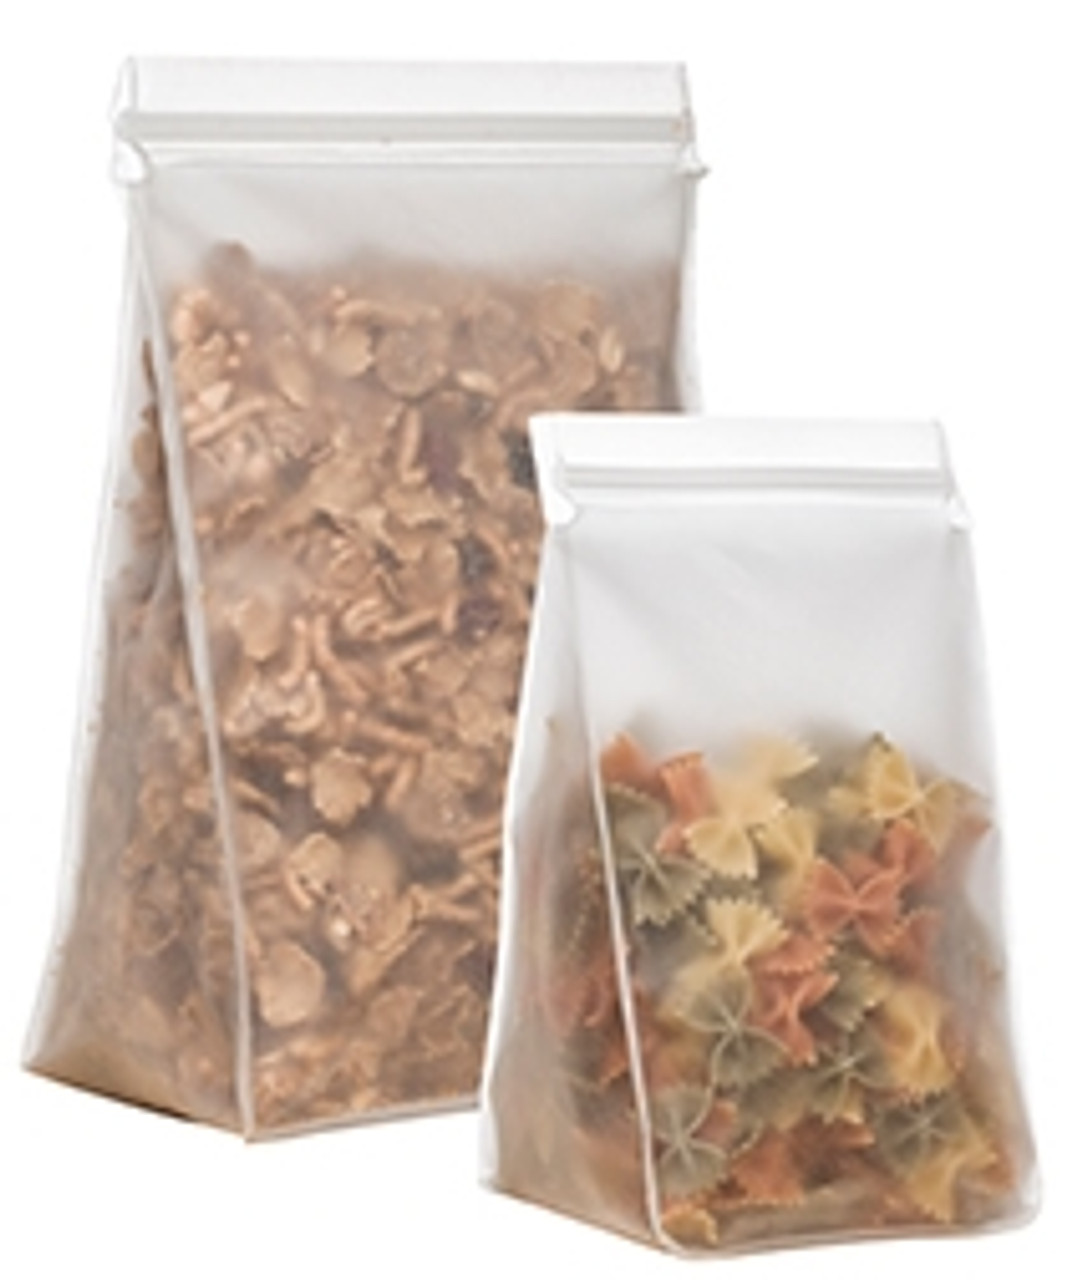 (re)zip Tall 2-piece Kit (6-cup & 8-cup)